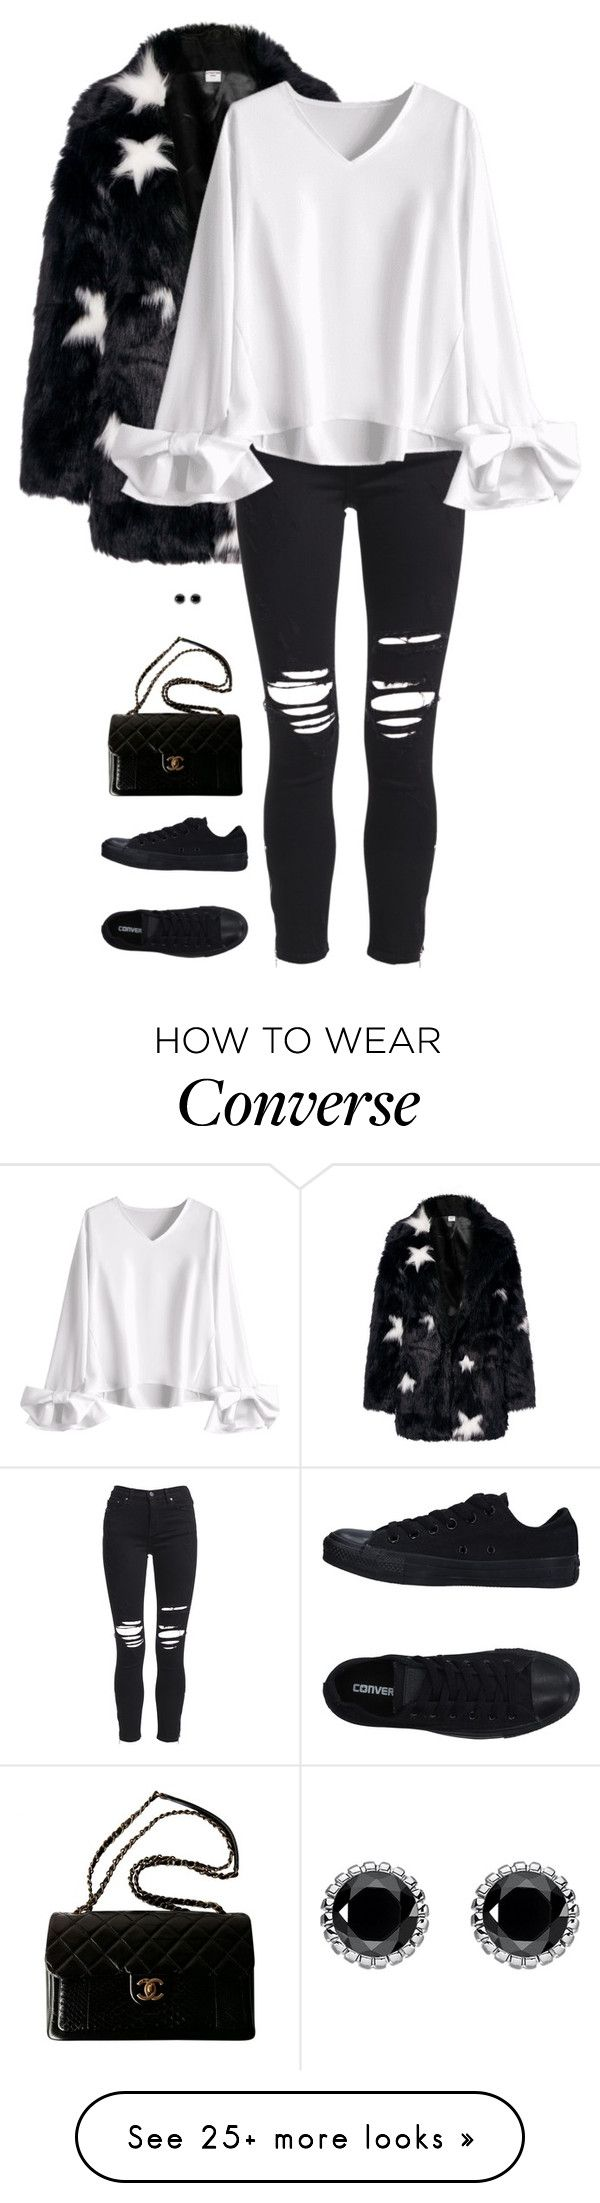 """Untitled #9175"" by miki006 on Polyvore featuring AMIRI, Chanel, Converse and Thomas Sabo"